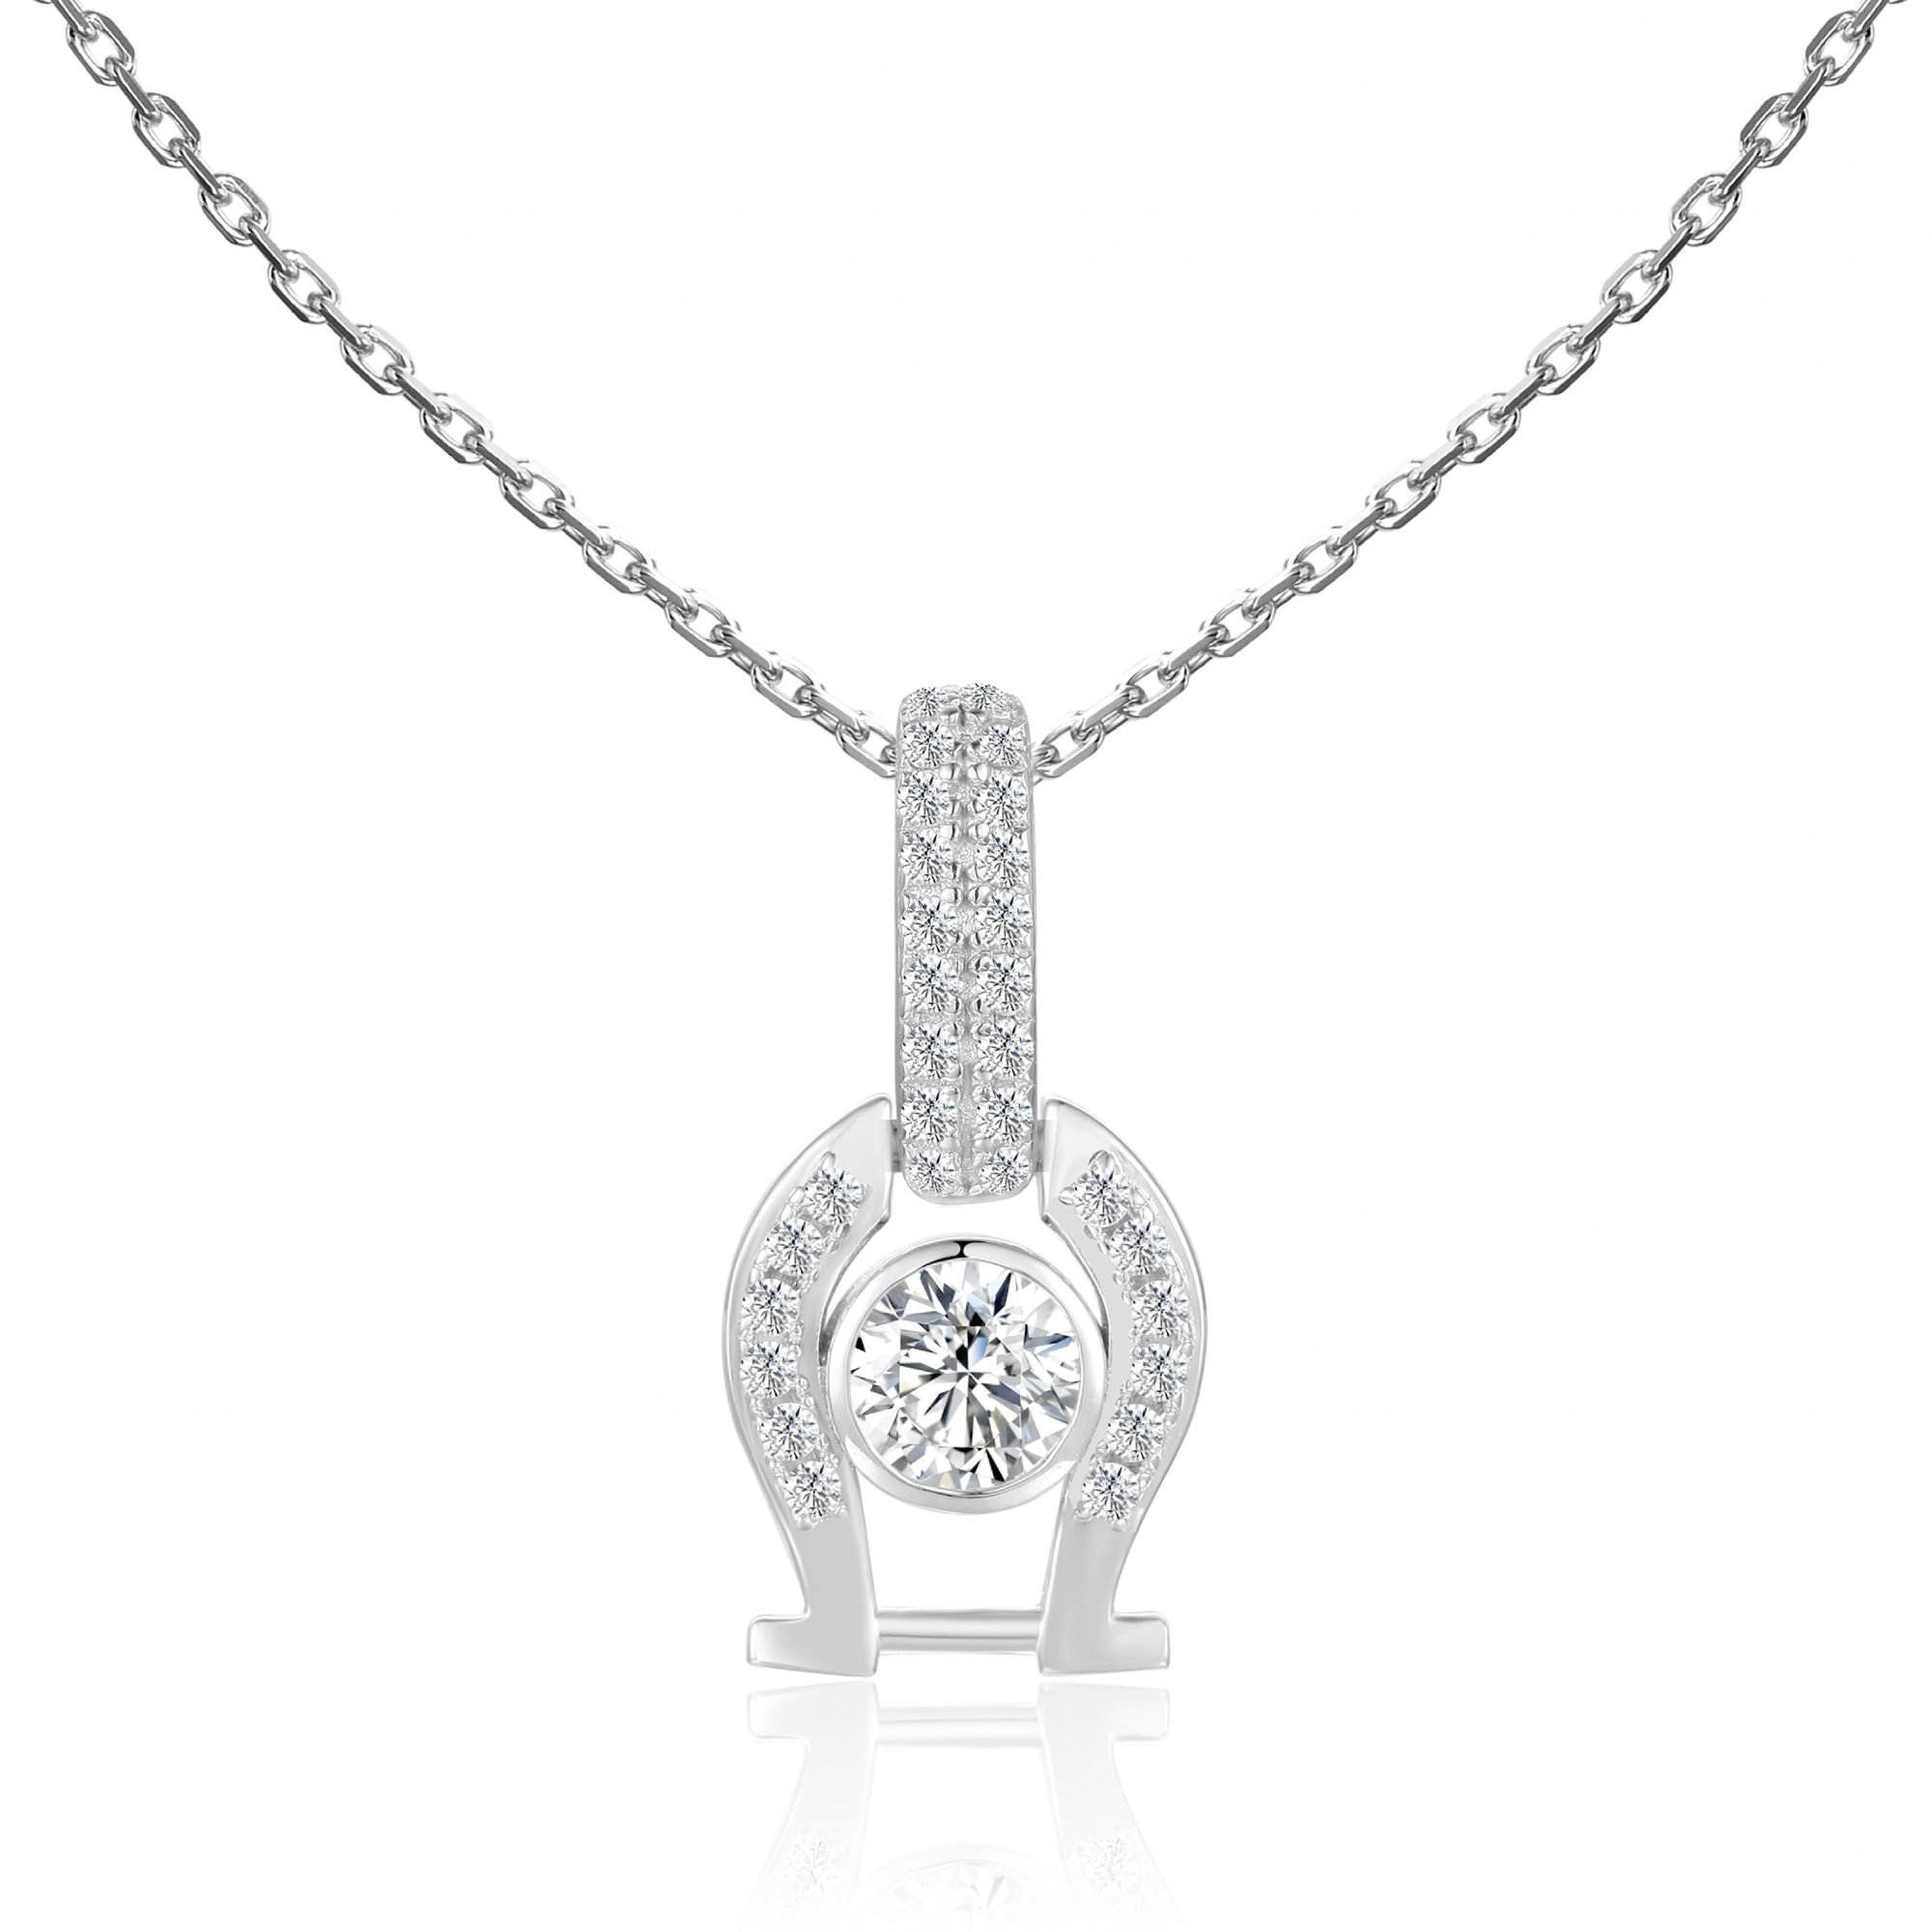 """VIKTOR ALEXANDER 925 SILVER PENDANT JEWELLERY WHITE SAPPHIRE GEMSTONE WITH 18"""" 925 SILVER CHAIN CONNECTOR HORSESHOE CHARM"""